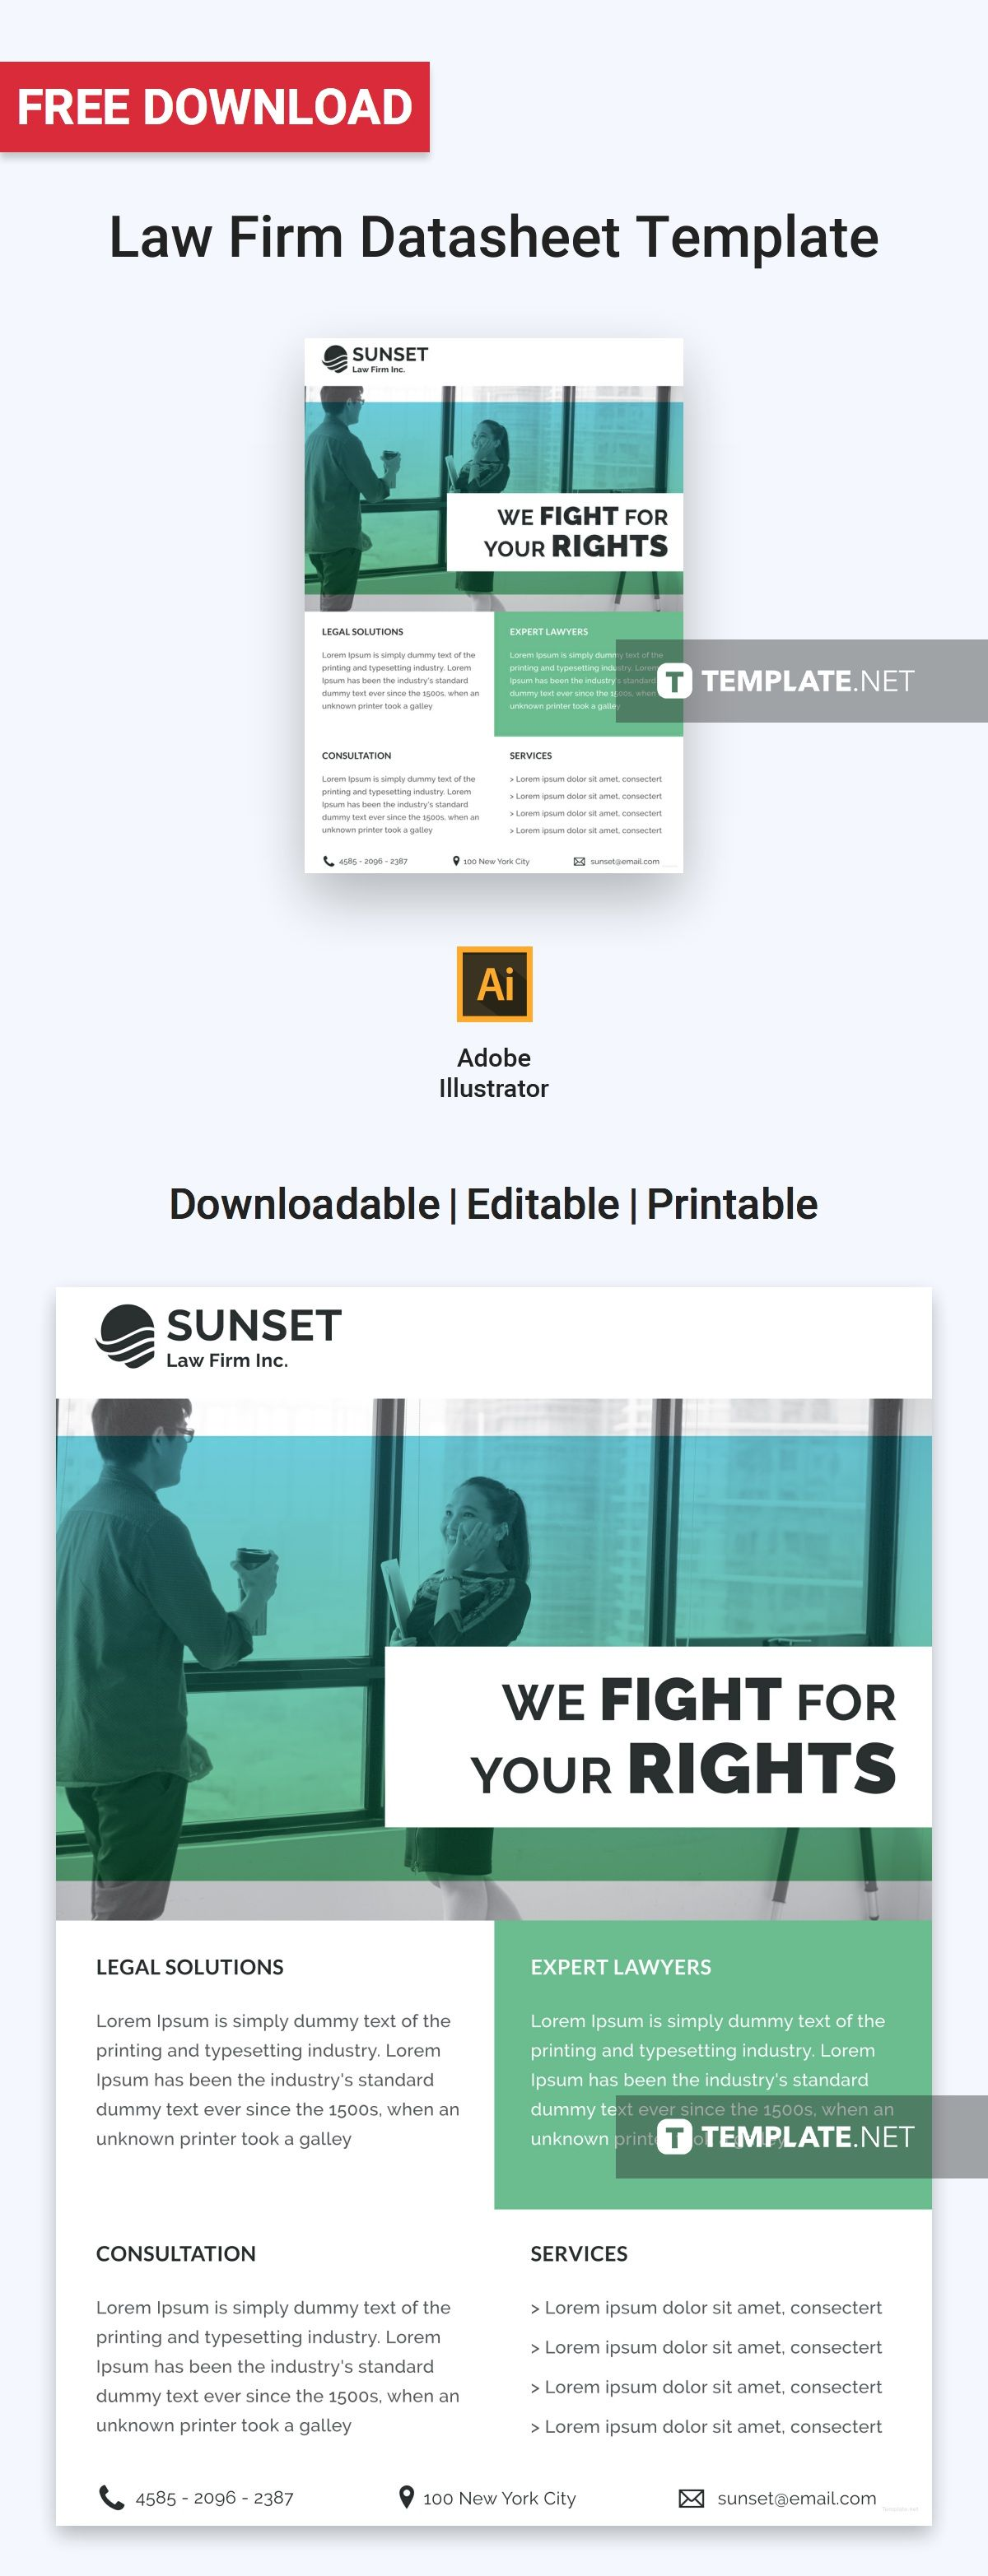 Law Firm Datasheet Template Word Psd Apple Pages Illustrator Publisher Law Firm Templates Microsoft Publisher Microsoft publisher templates free downloads